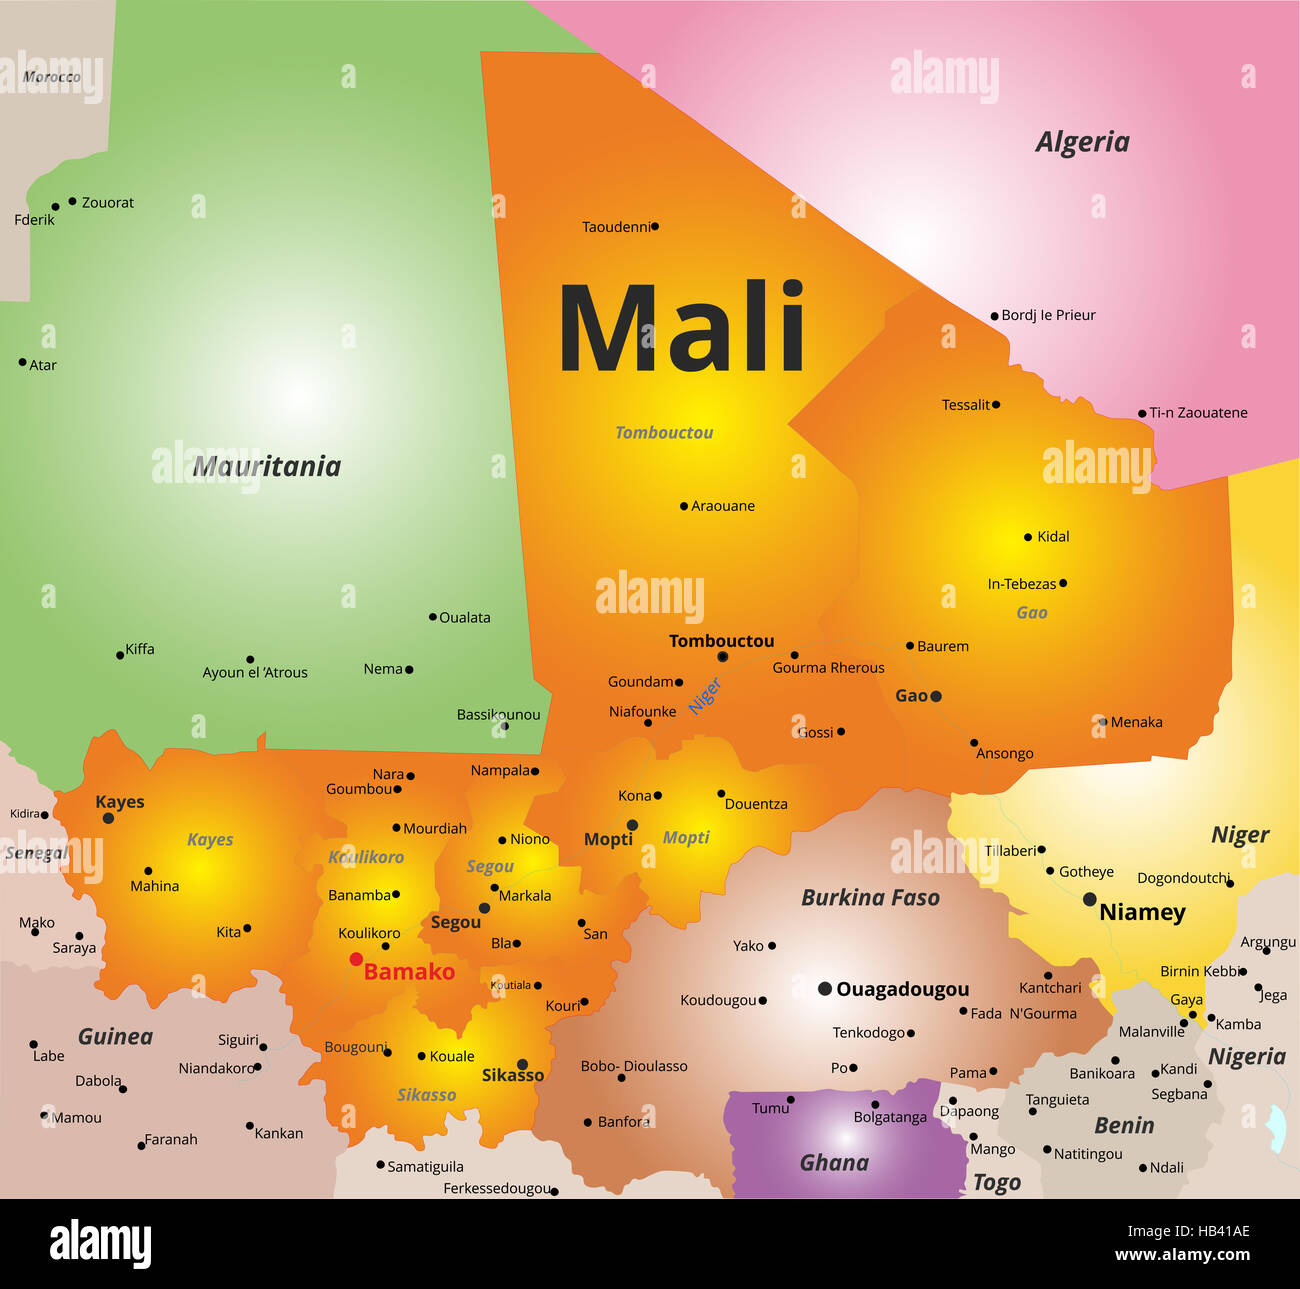 Color Map Of Mali Country Stock Photo Royalty Free Image - Map of mali